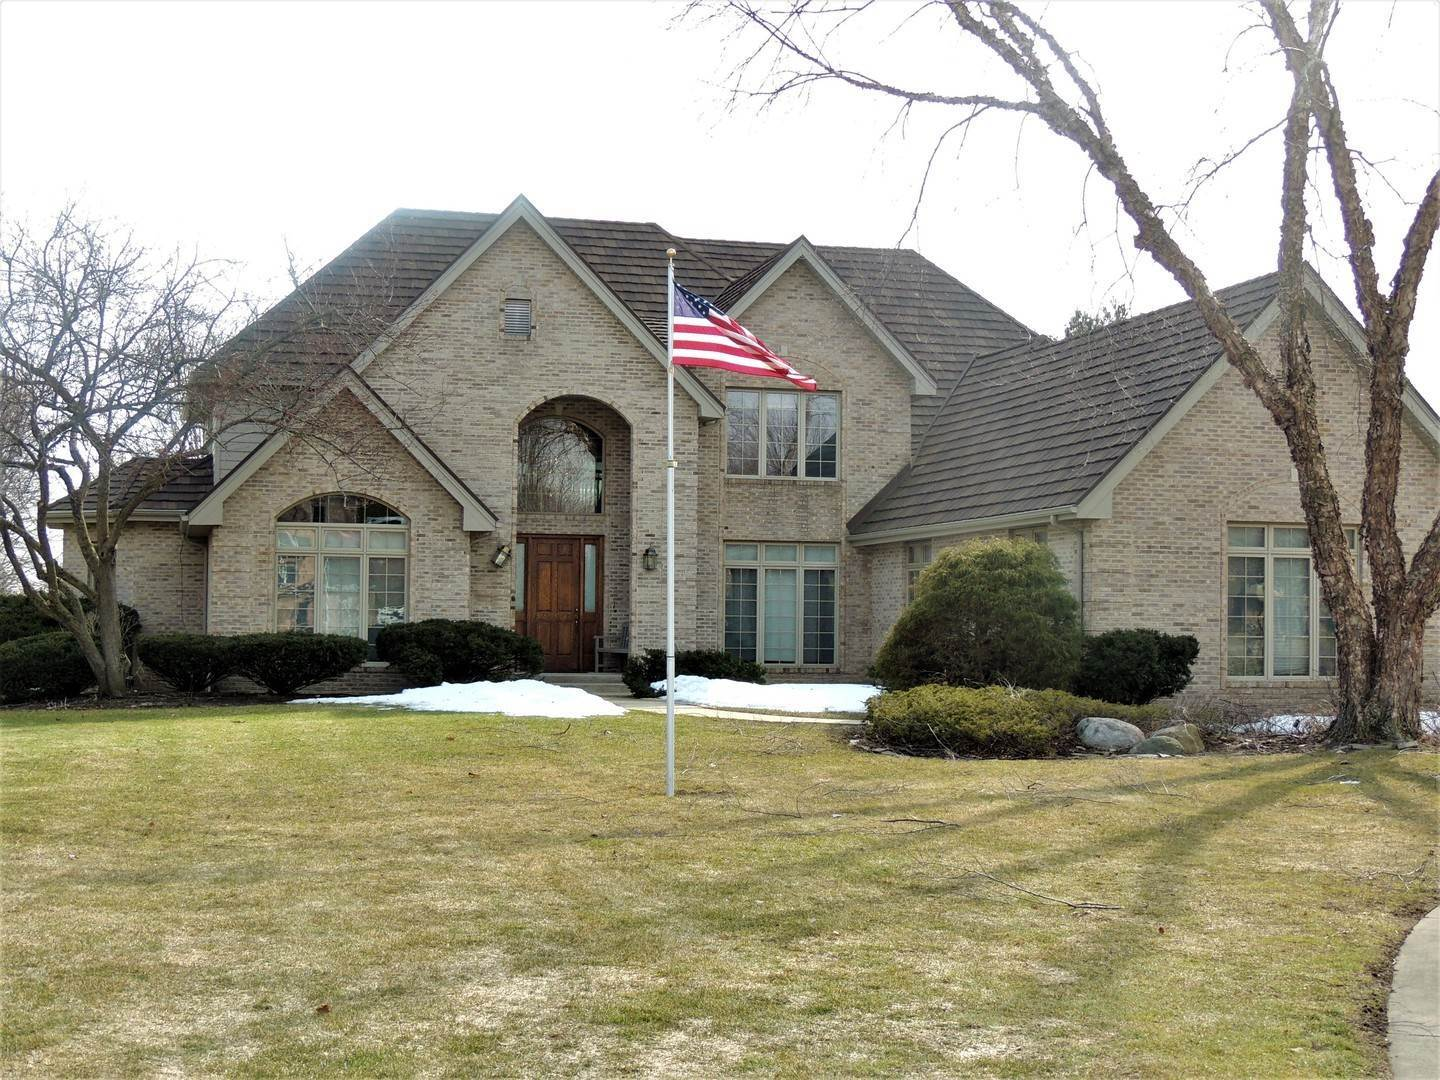 Single Family Homes for Sale at 2 Park Avenue Peru, Illinois 61354 United States